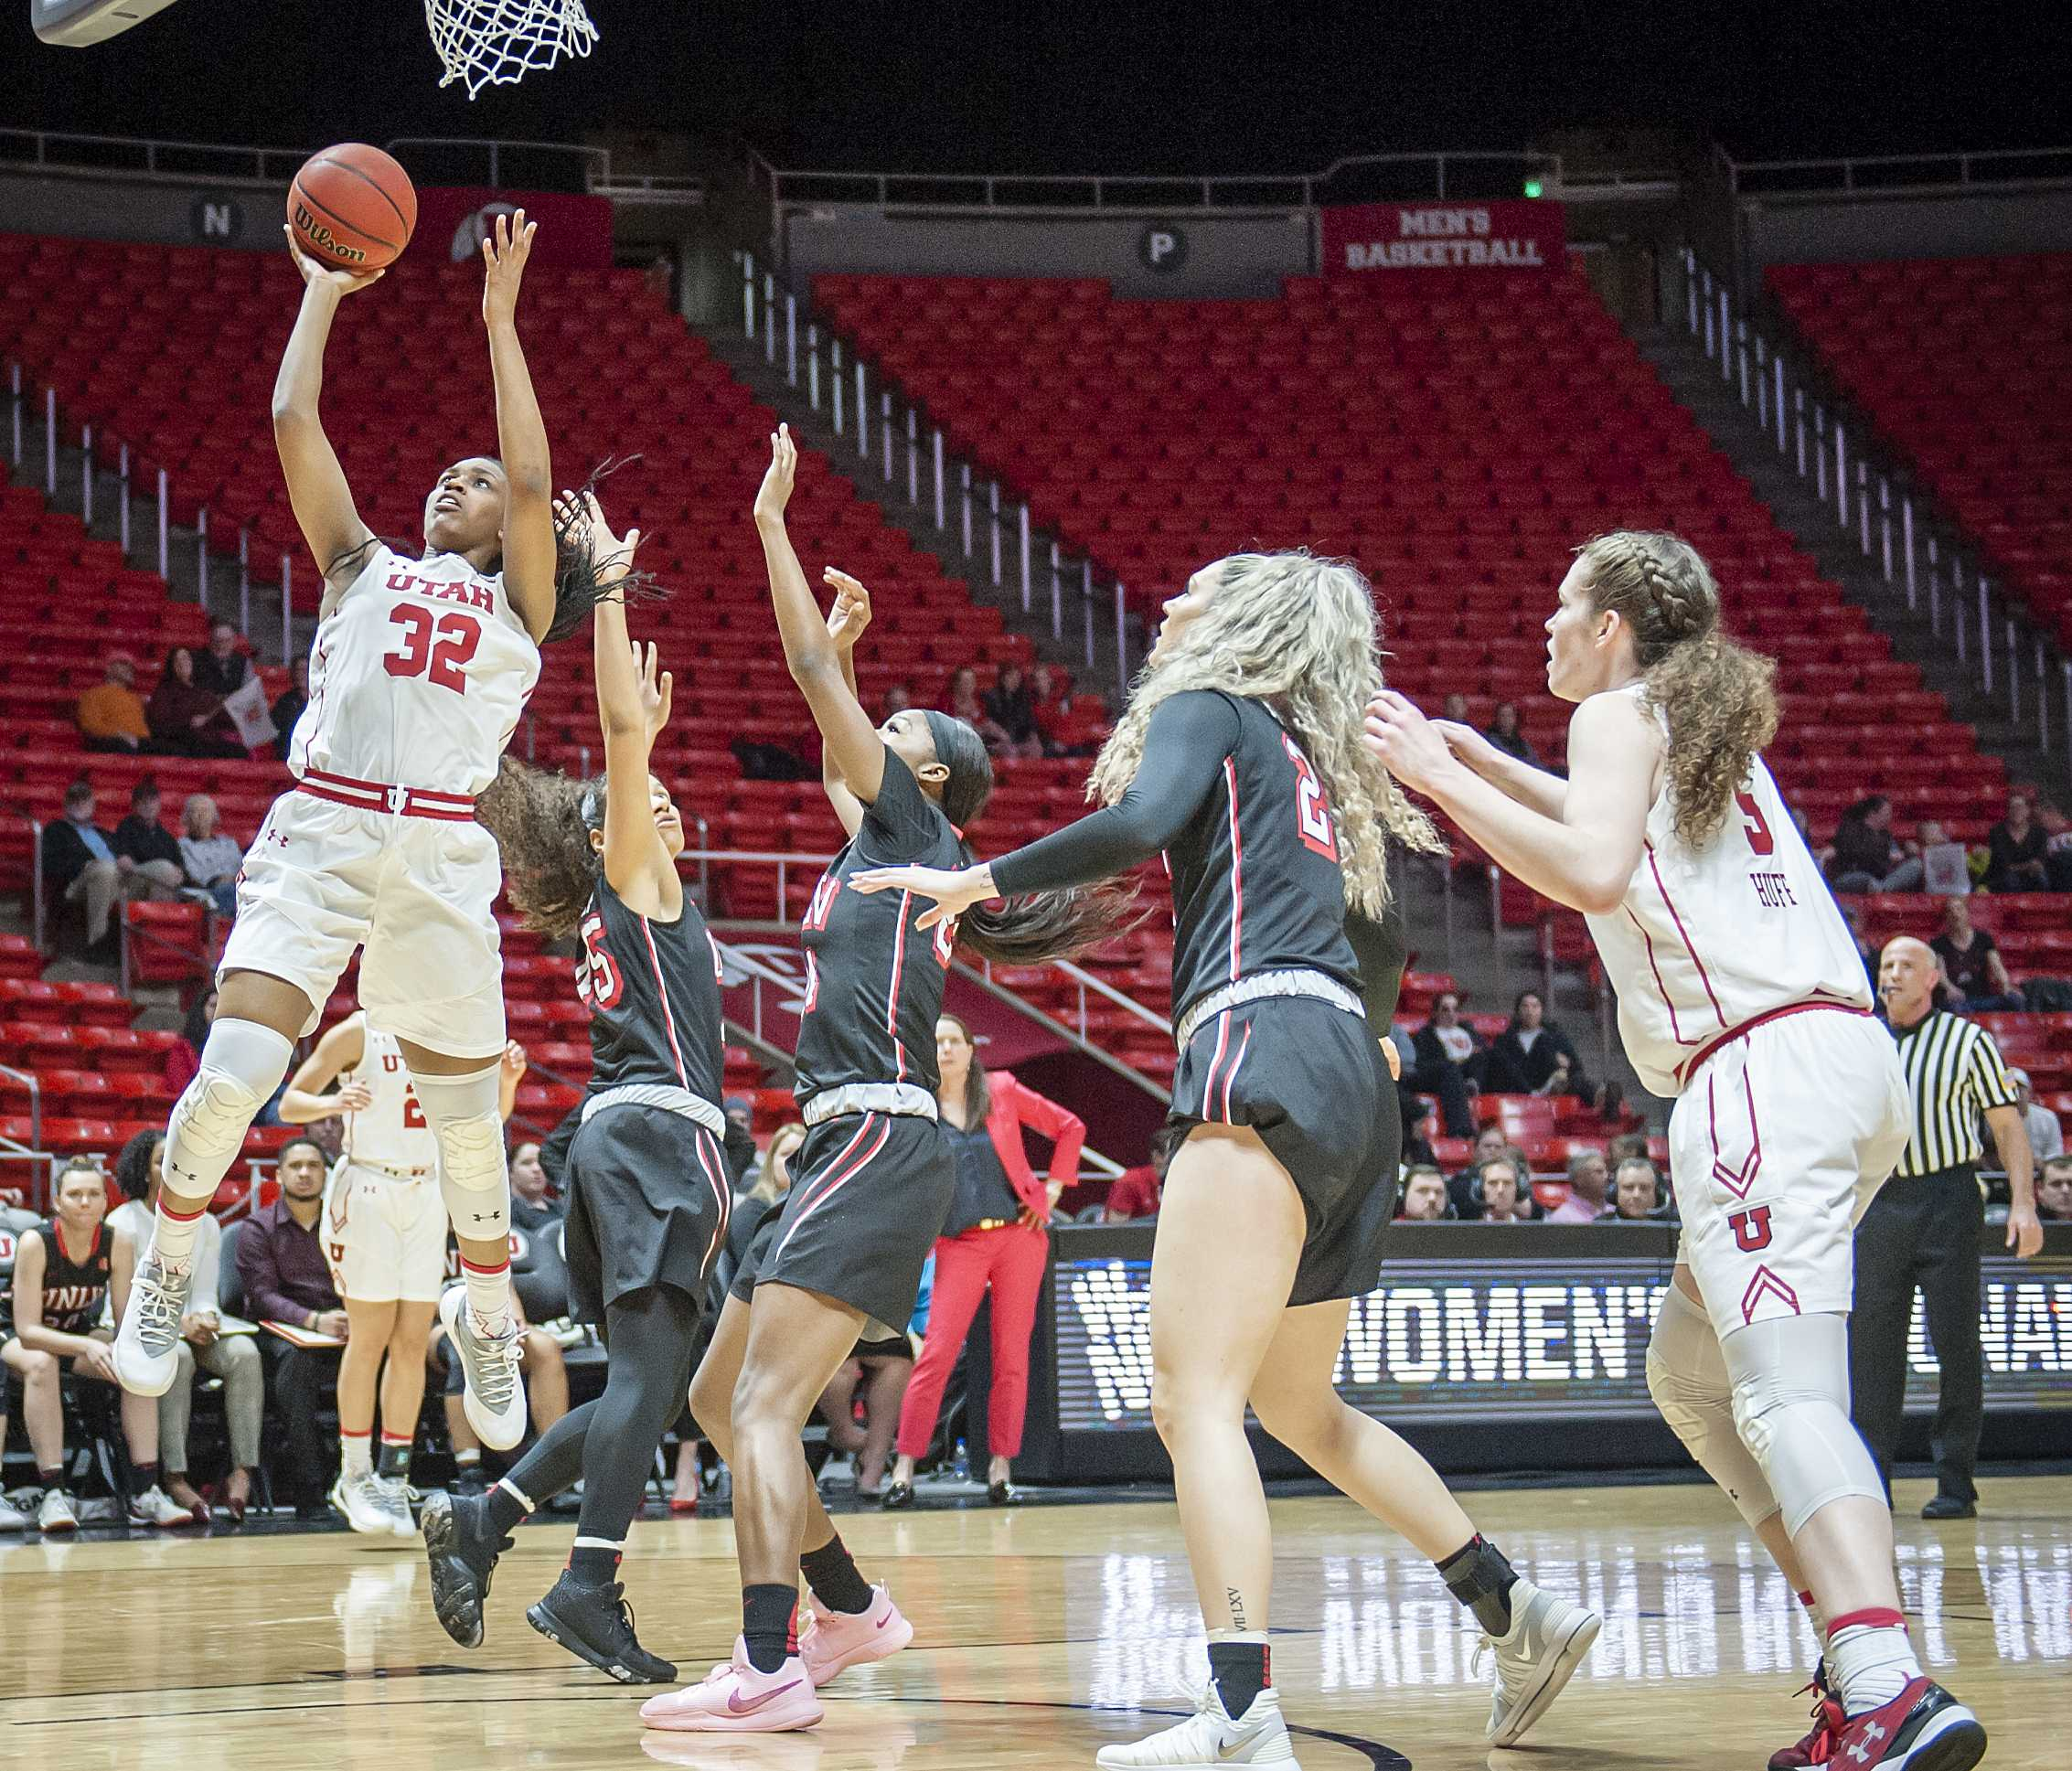 Utah Utes forward Tanaeya Boclair (32) shoots after driving through the UNLV defense as the University of Utah Lady Utes take on the UNLV Runin Rebels at the Huntsman Center in Salt Lake City, UT on Thursday, March 15, 2018.  (Photo by Adam Fondren | Daily Utah Chronicle)